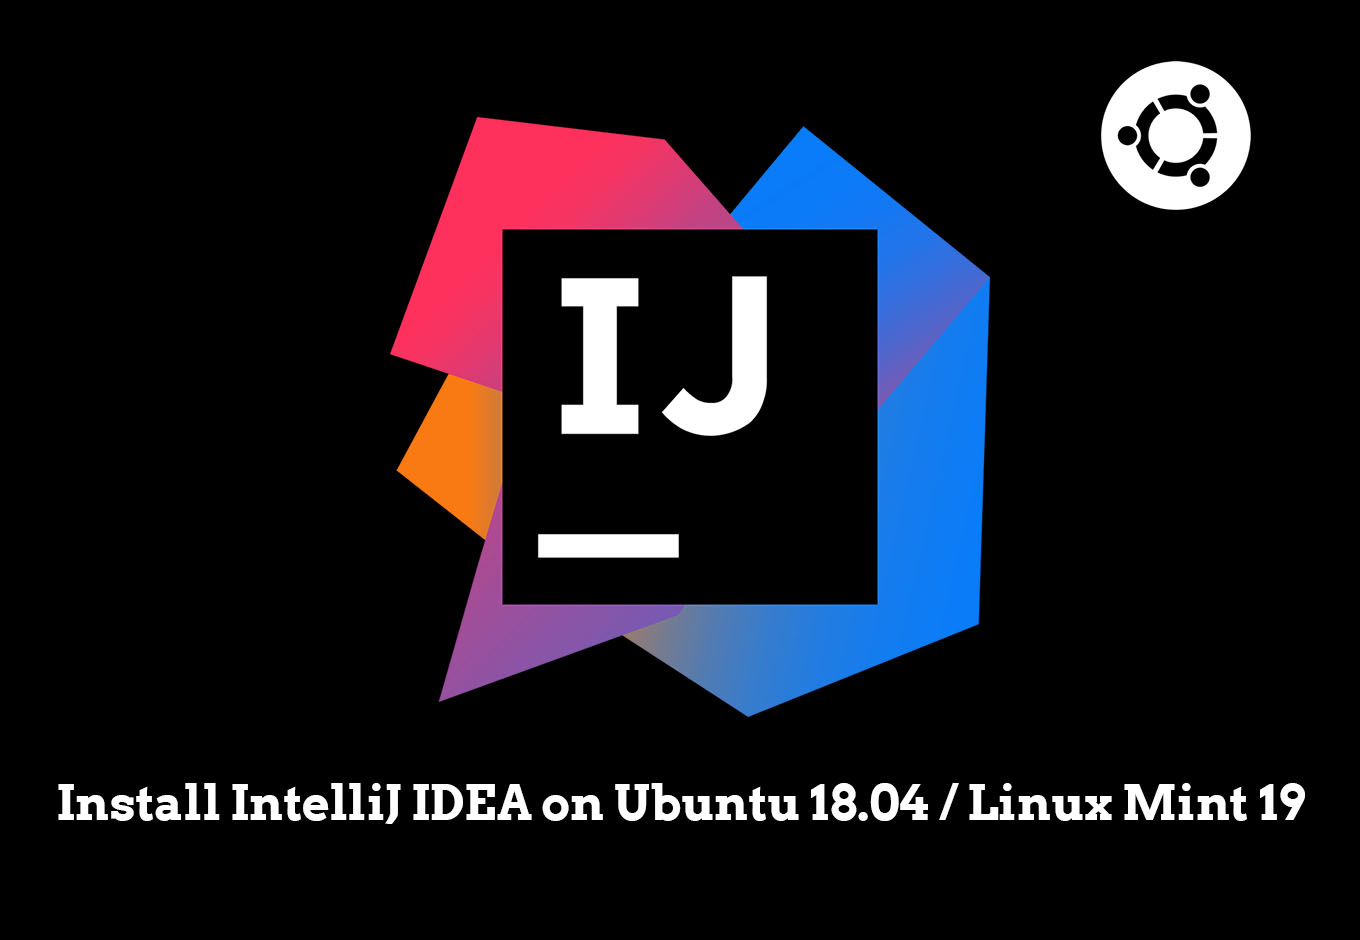 How To Install IntelliJ IDEA on Ubuntu 18 04 / Linux Mint 19 - ITzGeek